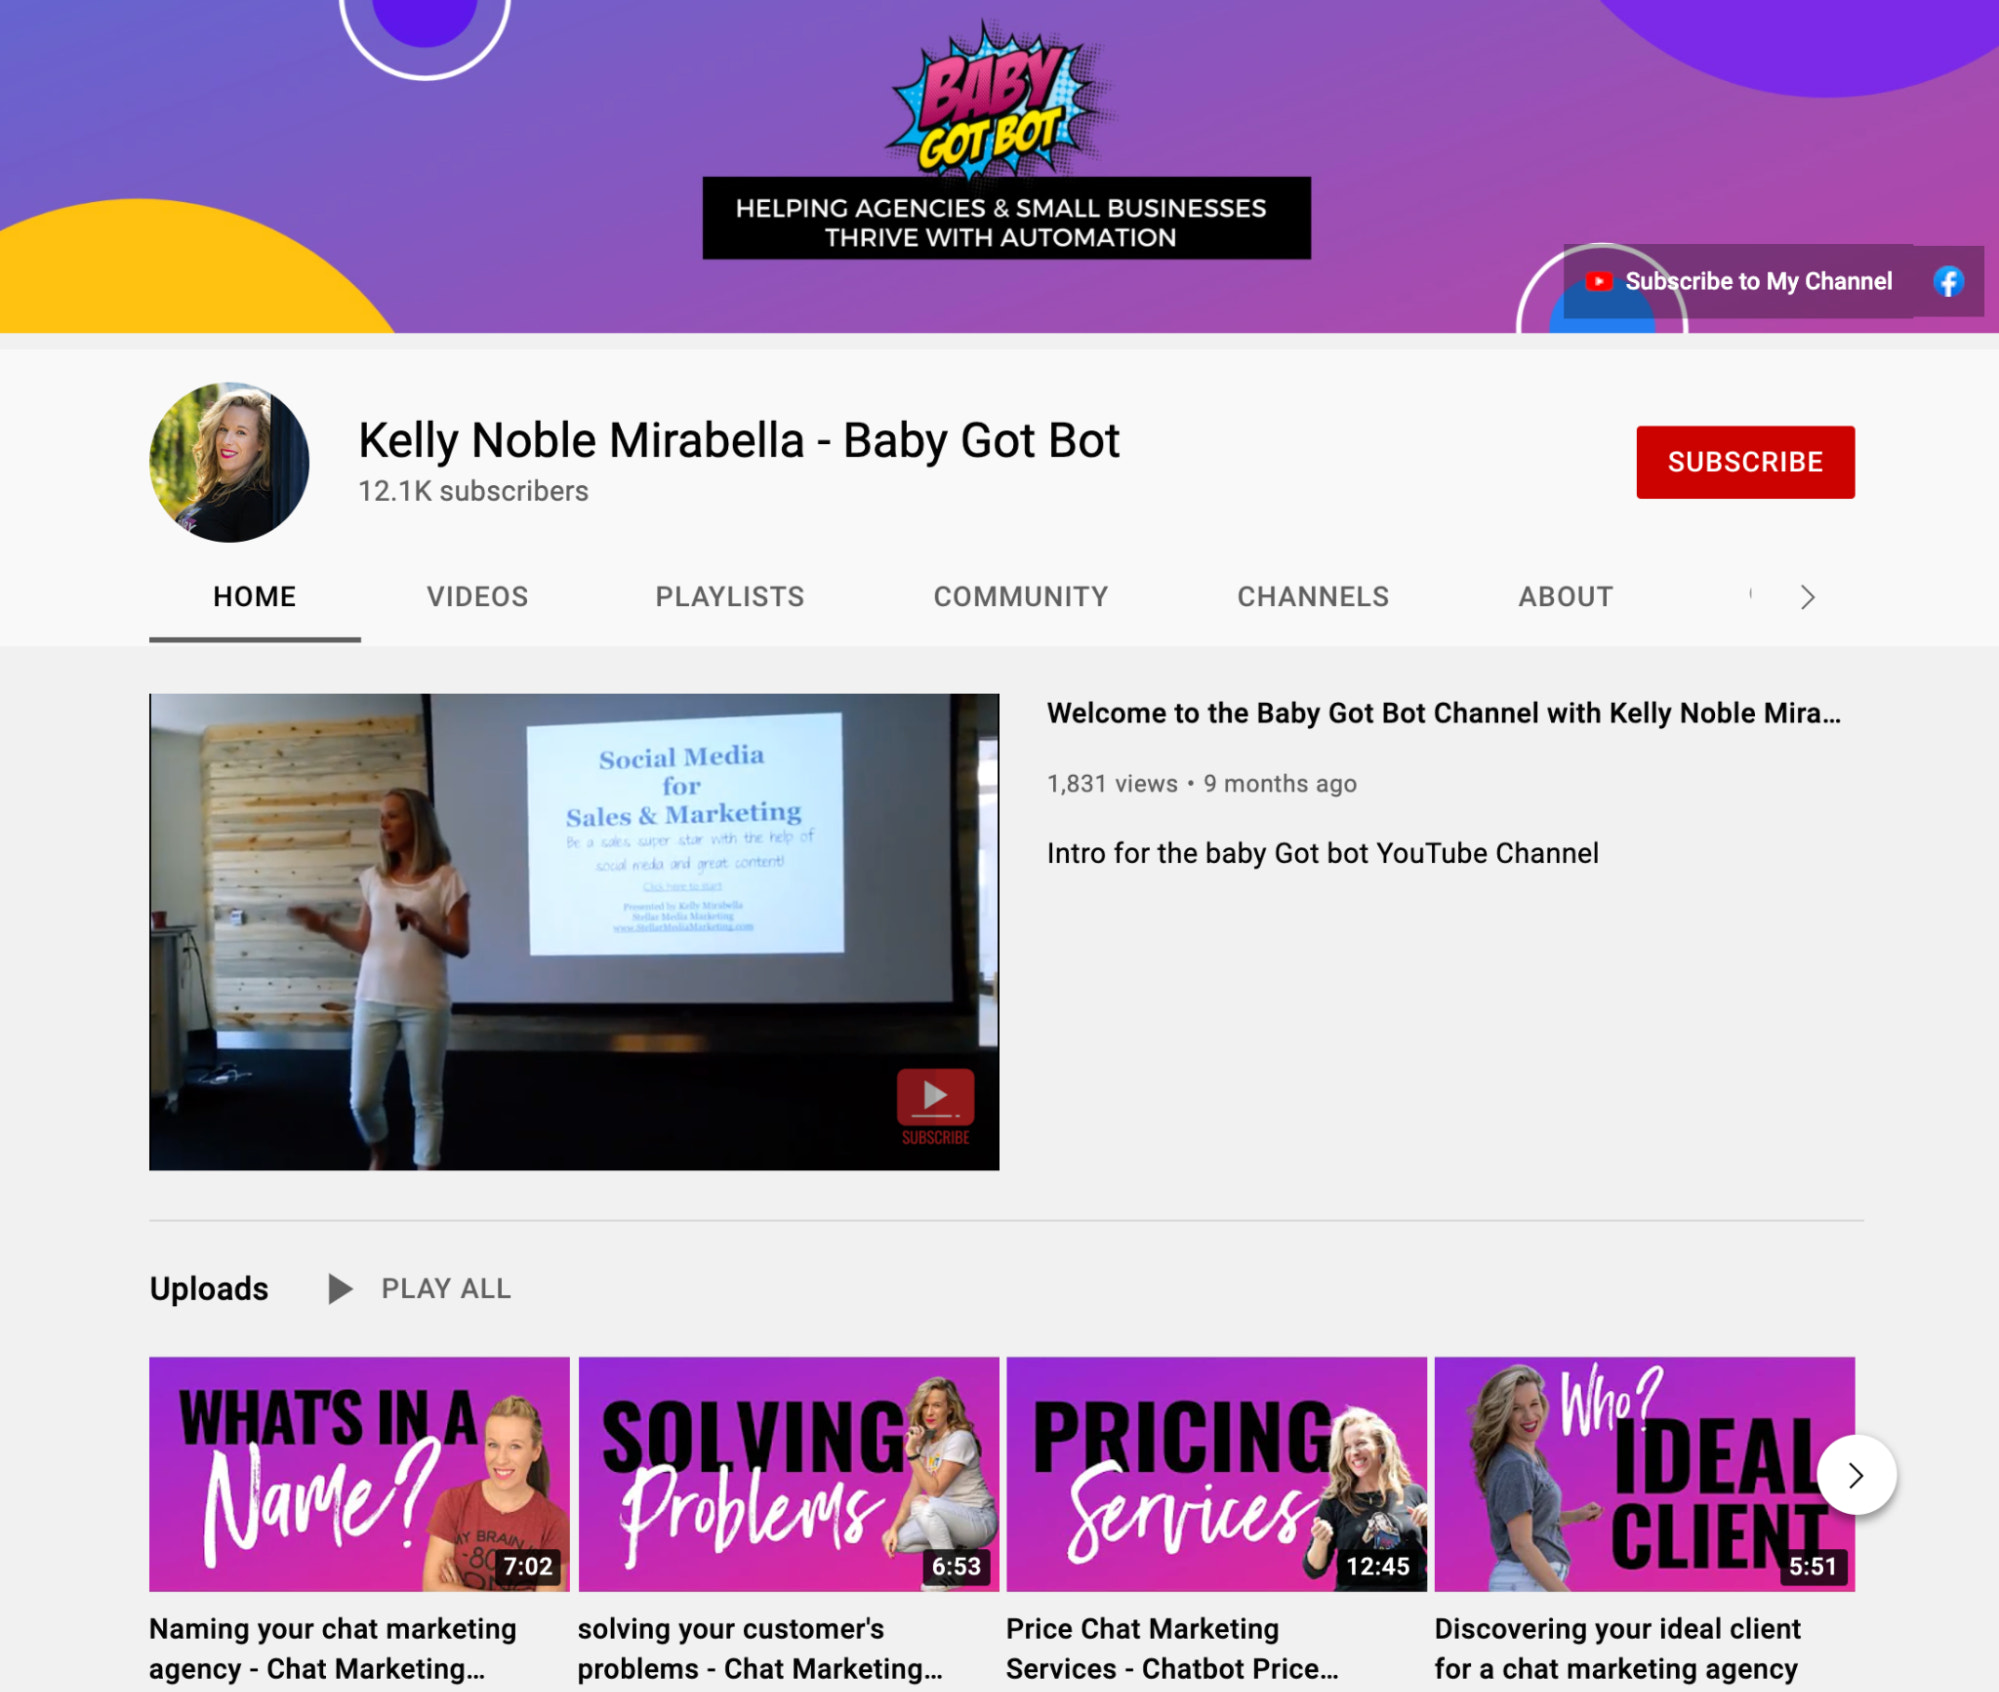 YouTube marketing can earn you money through speaking gigs like Baby Got Bot